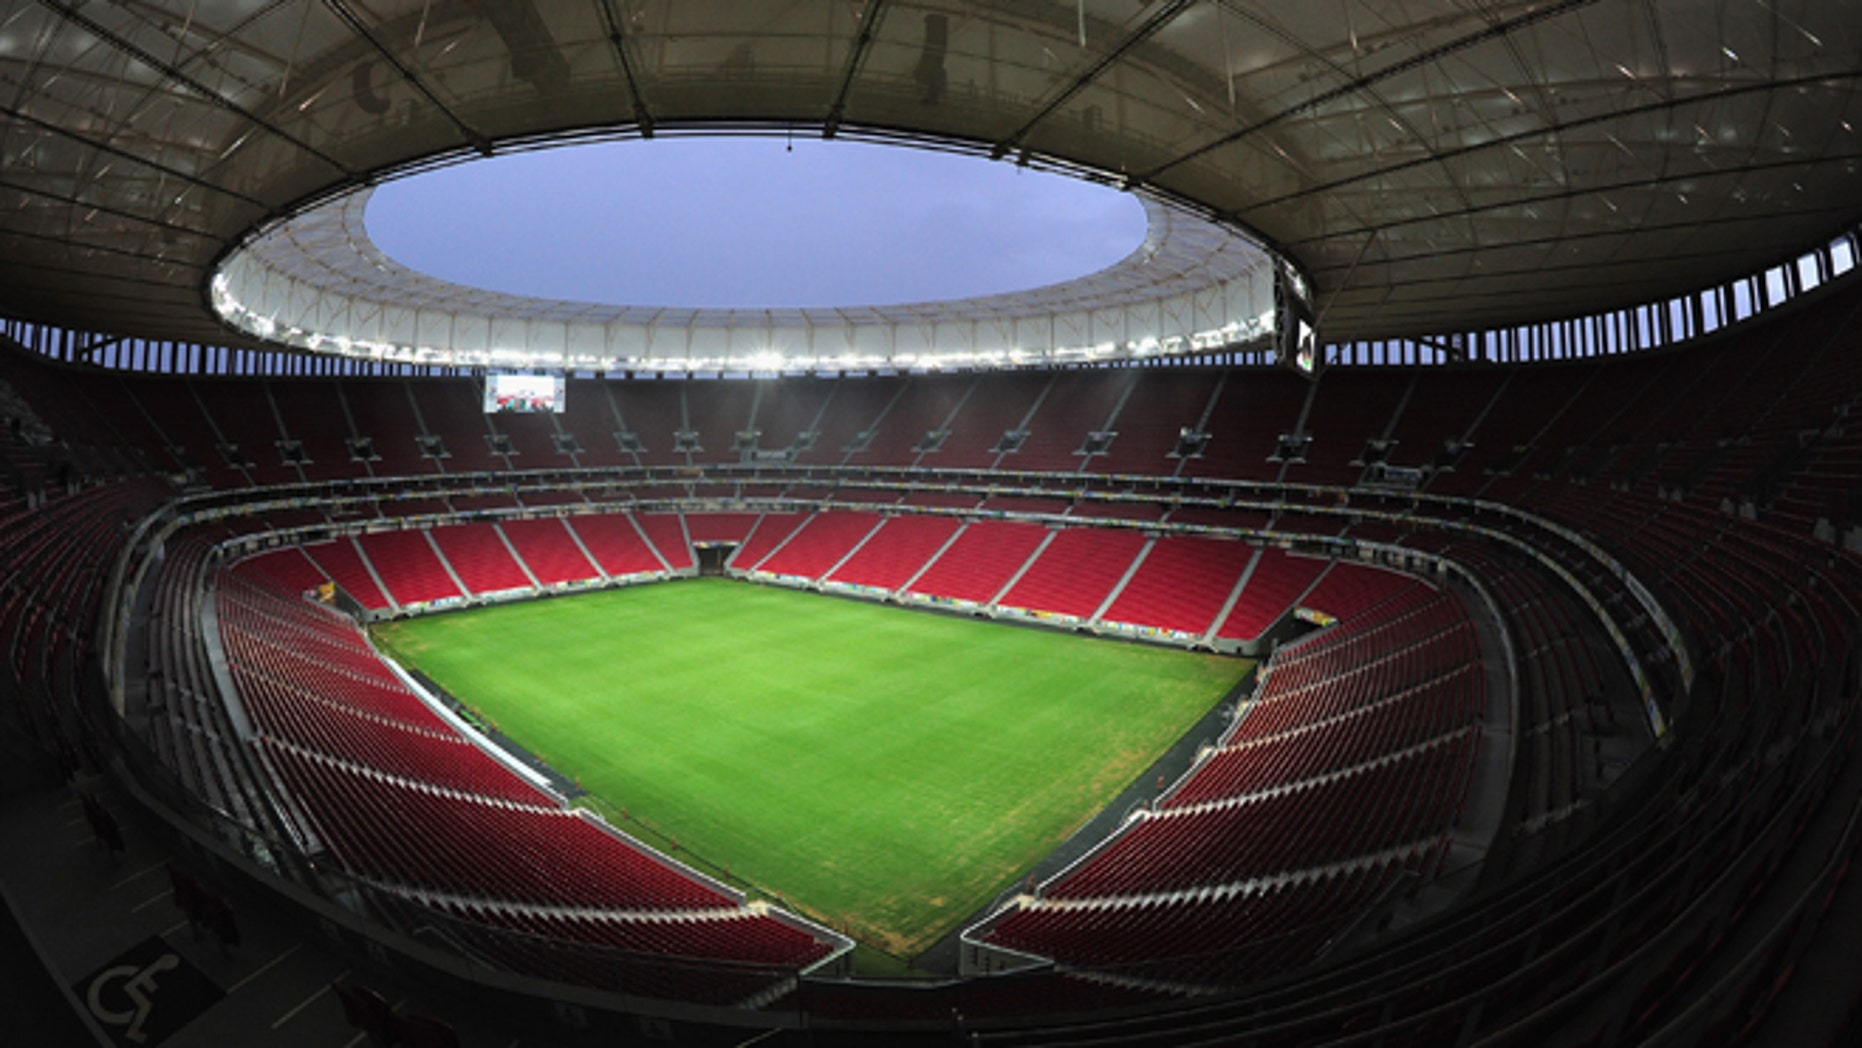 BRASILIA, BRAZIL - DECEMBER 09:  A general view of the Mane Garrincha Stadium venue for the 2014 FIFA World Cup Brazil on December 9, 2013 in Brasilia, Brazil.  (Photo by Shaun Botterill/Getty Images,)